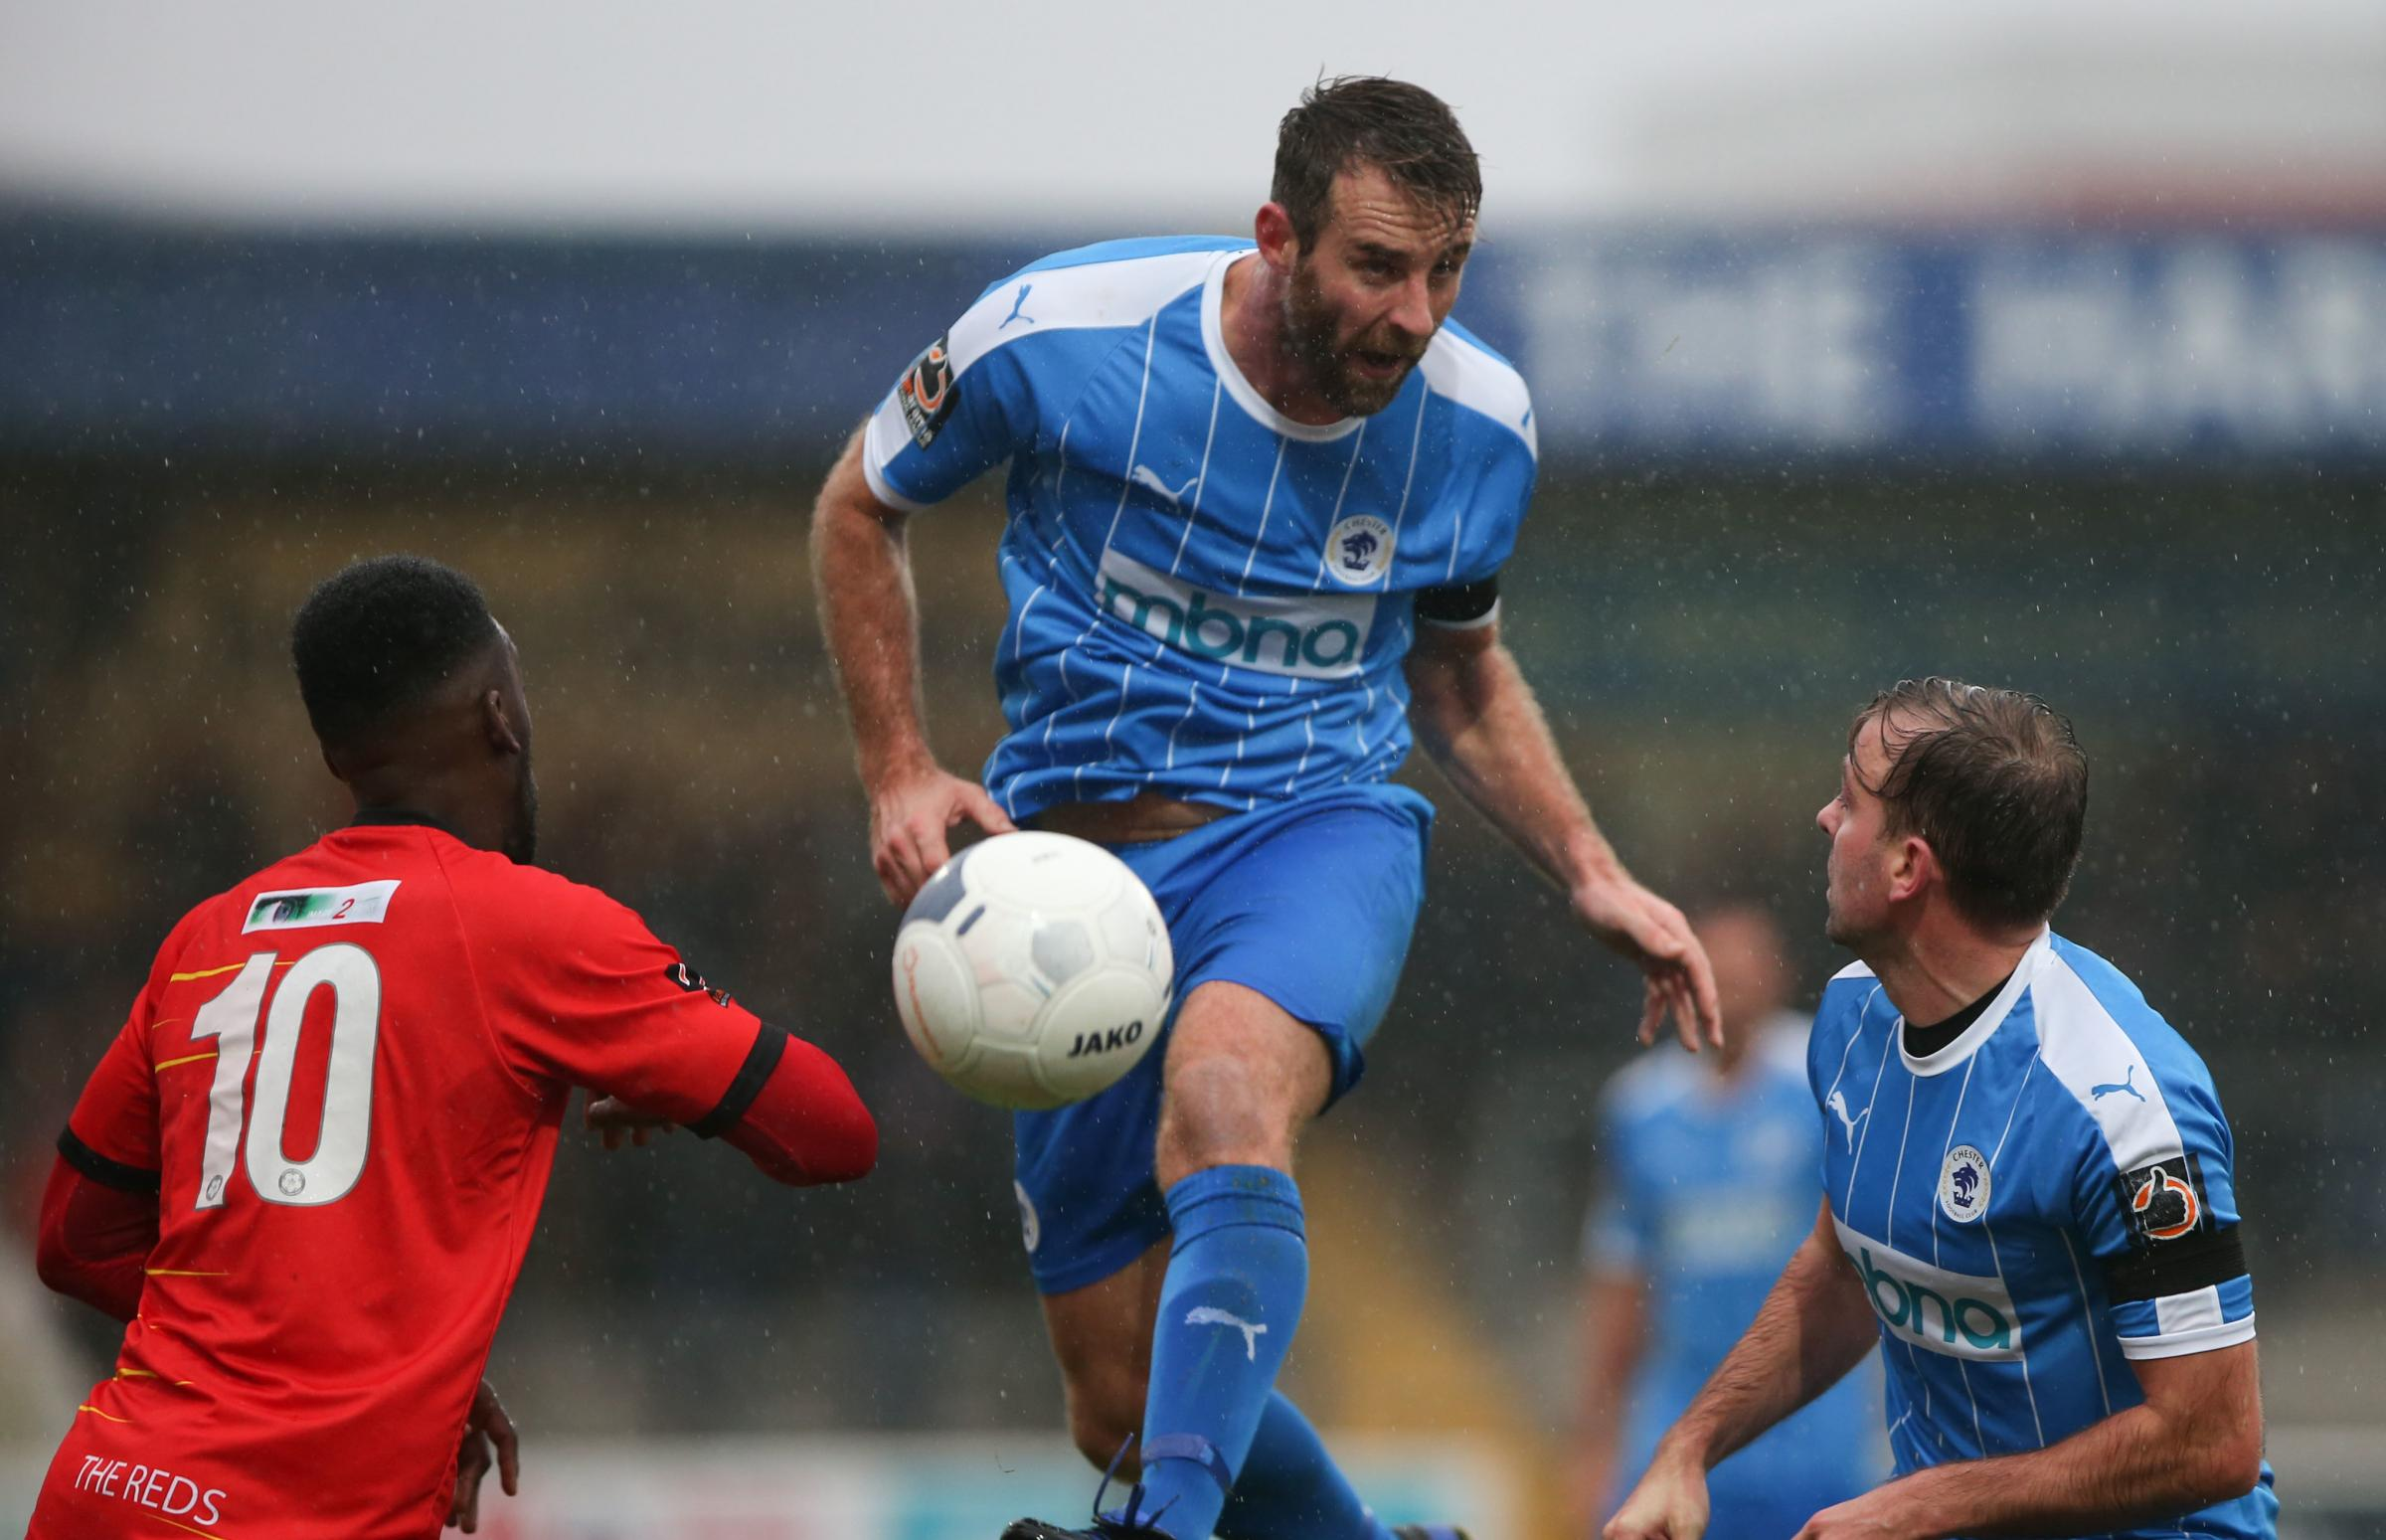 Chester FC defender Danny Livesey believes top clubs can afford to help during coronavirus